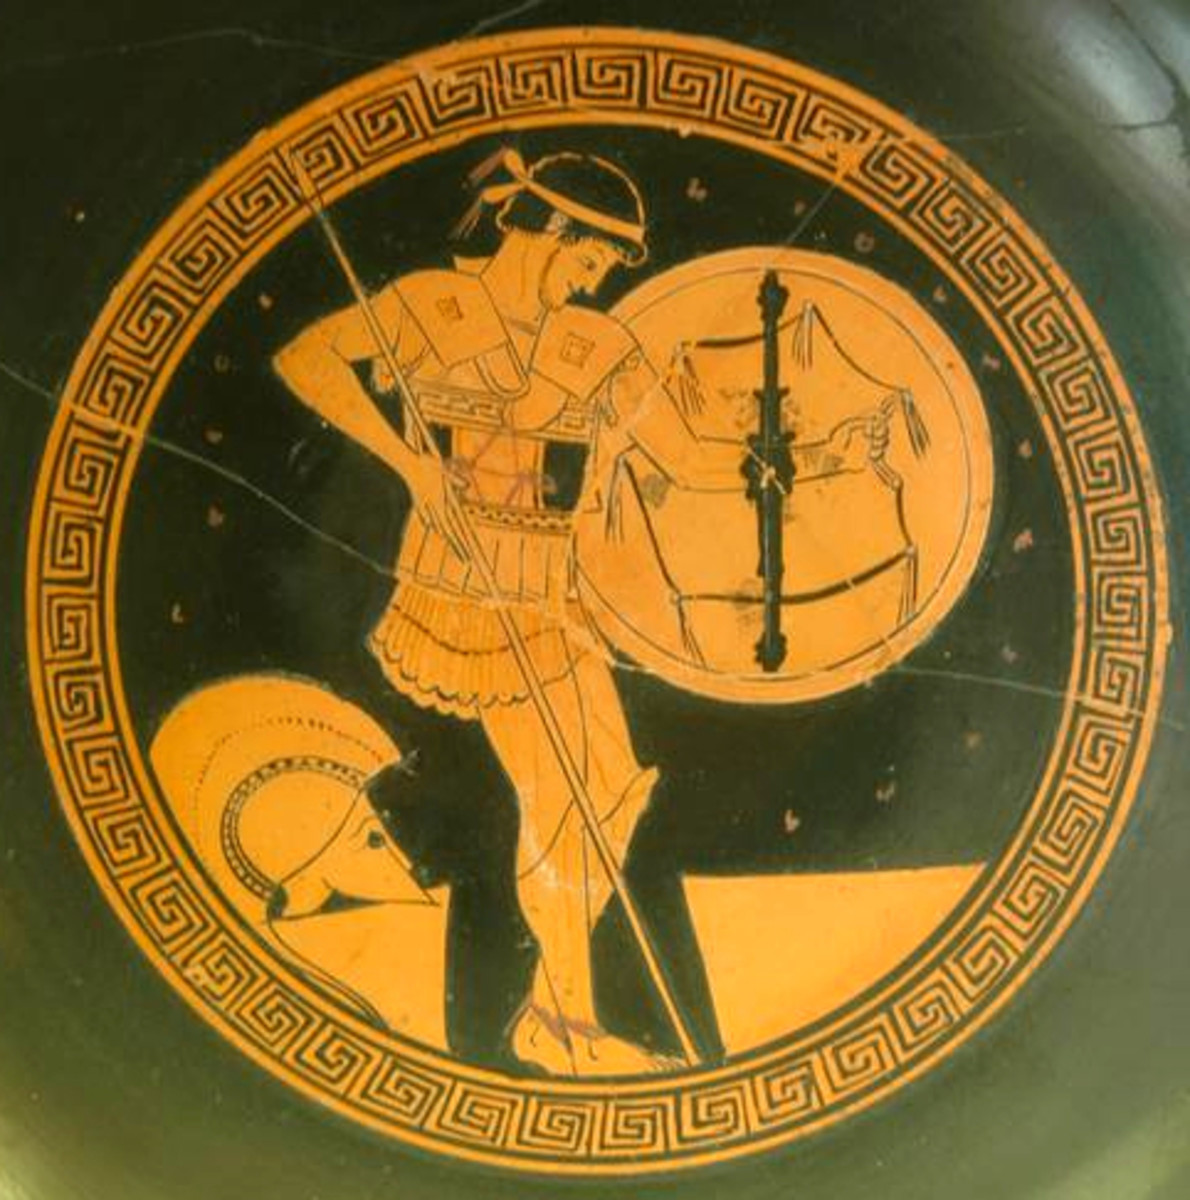 Greek hoplite or foot-soldier during the fifth century BCE.